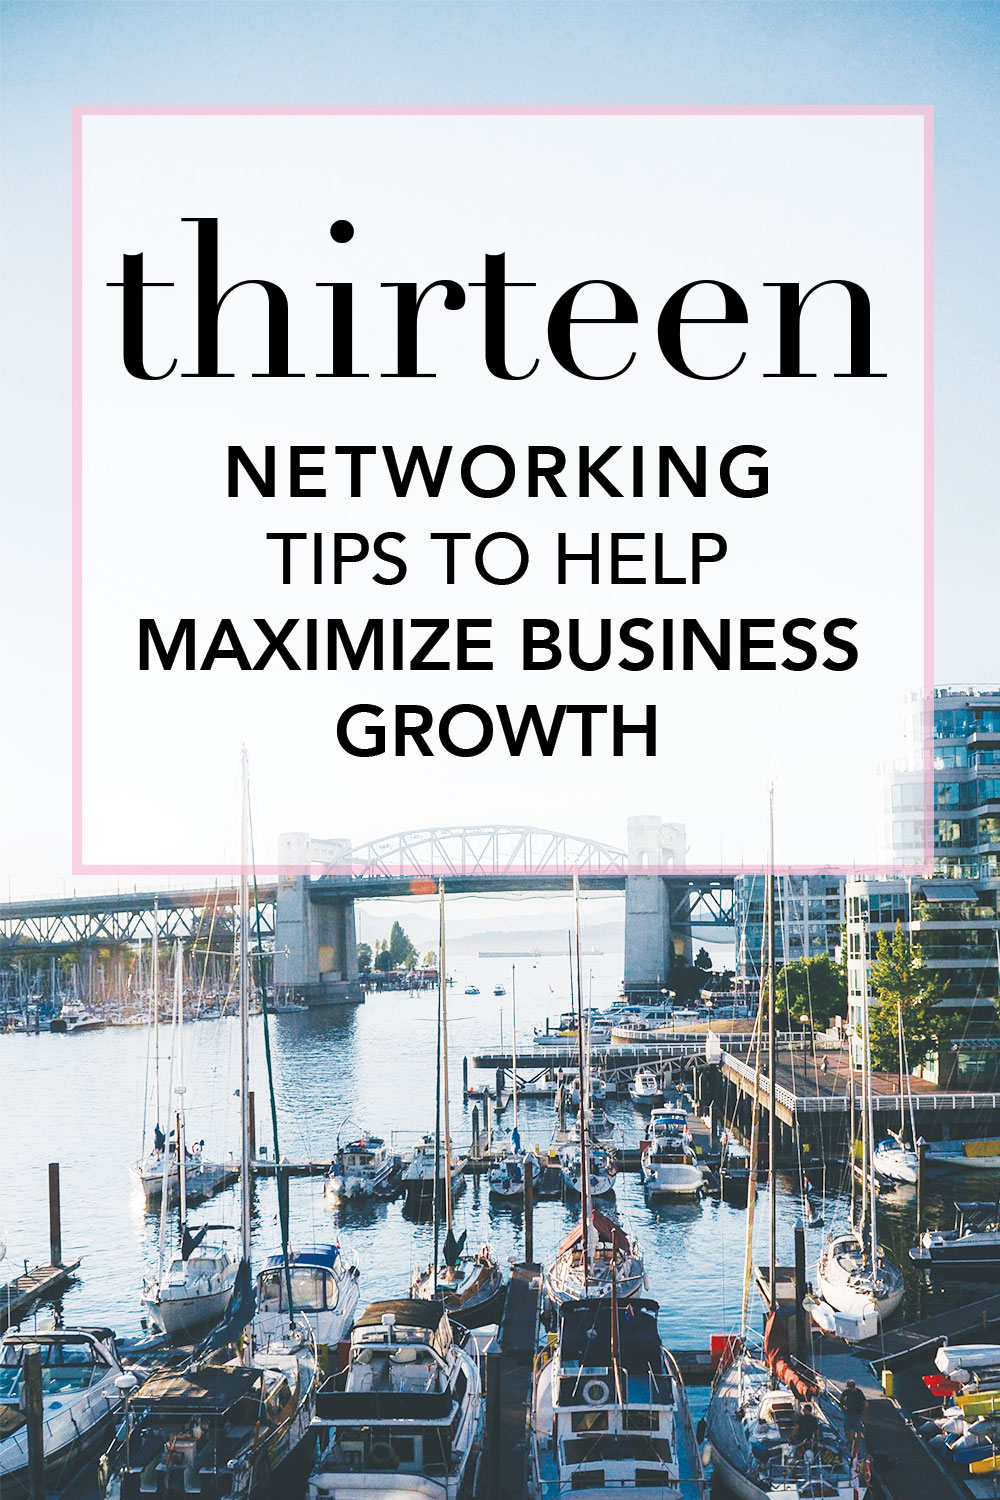 13 Networking Tips to Maximize Your Business